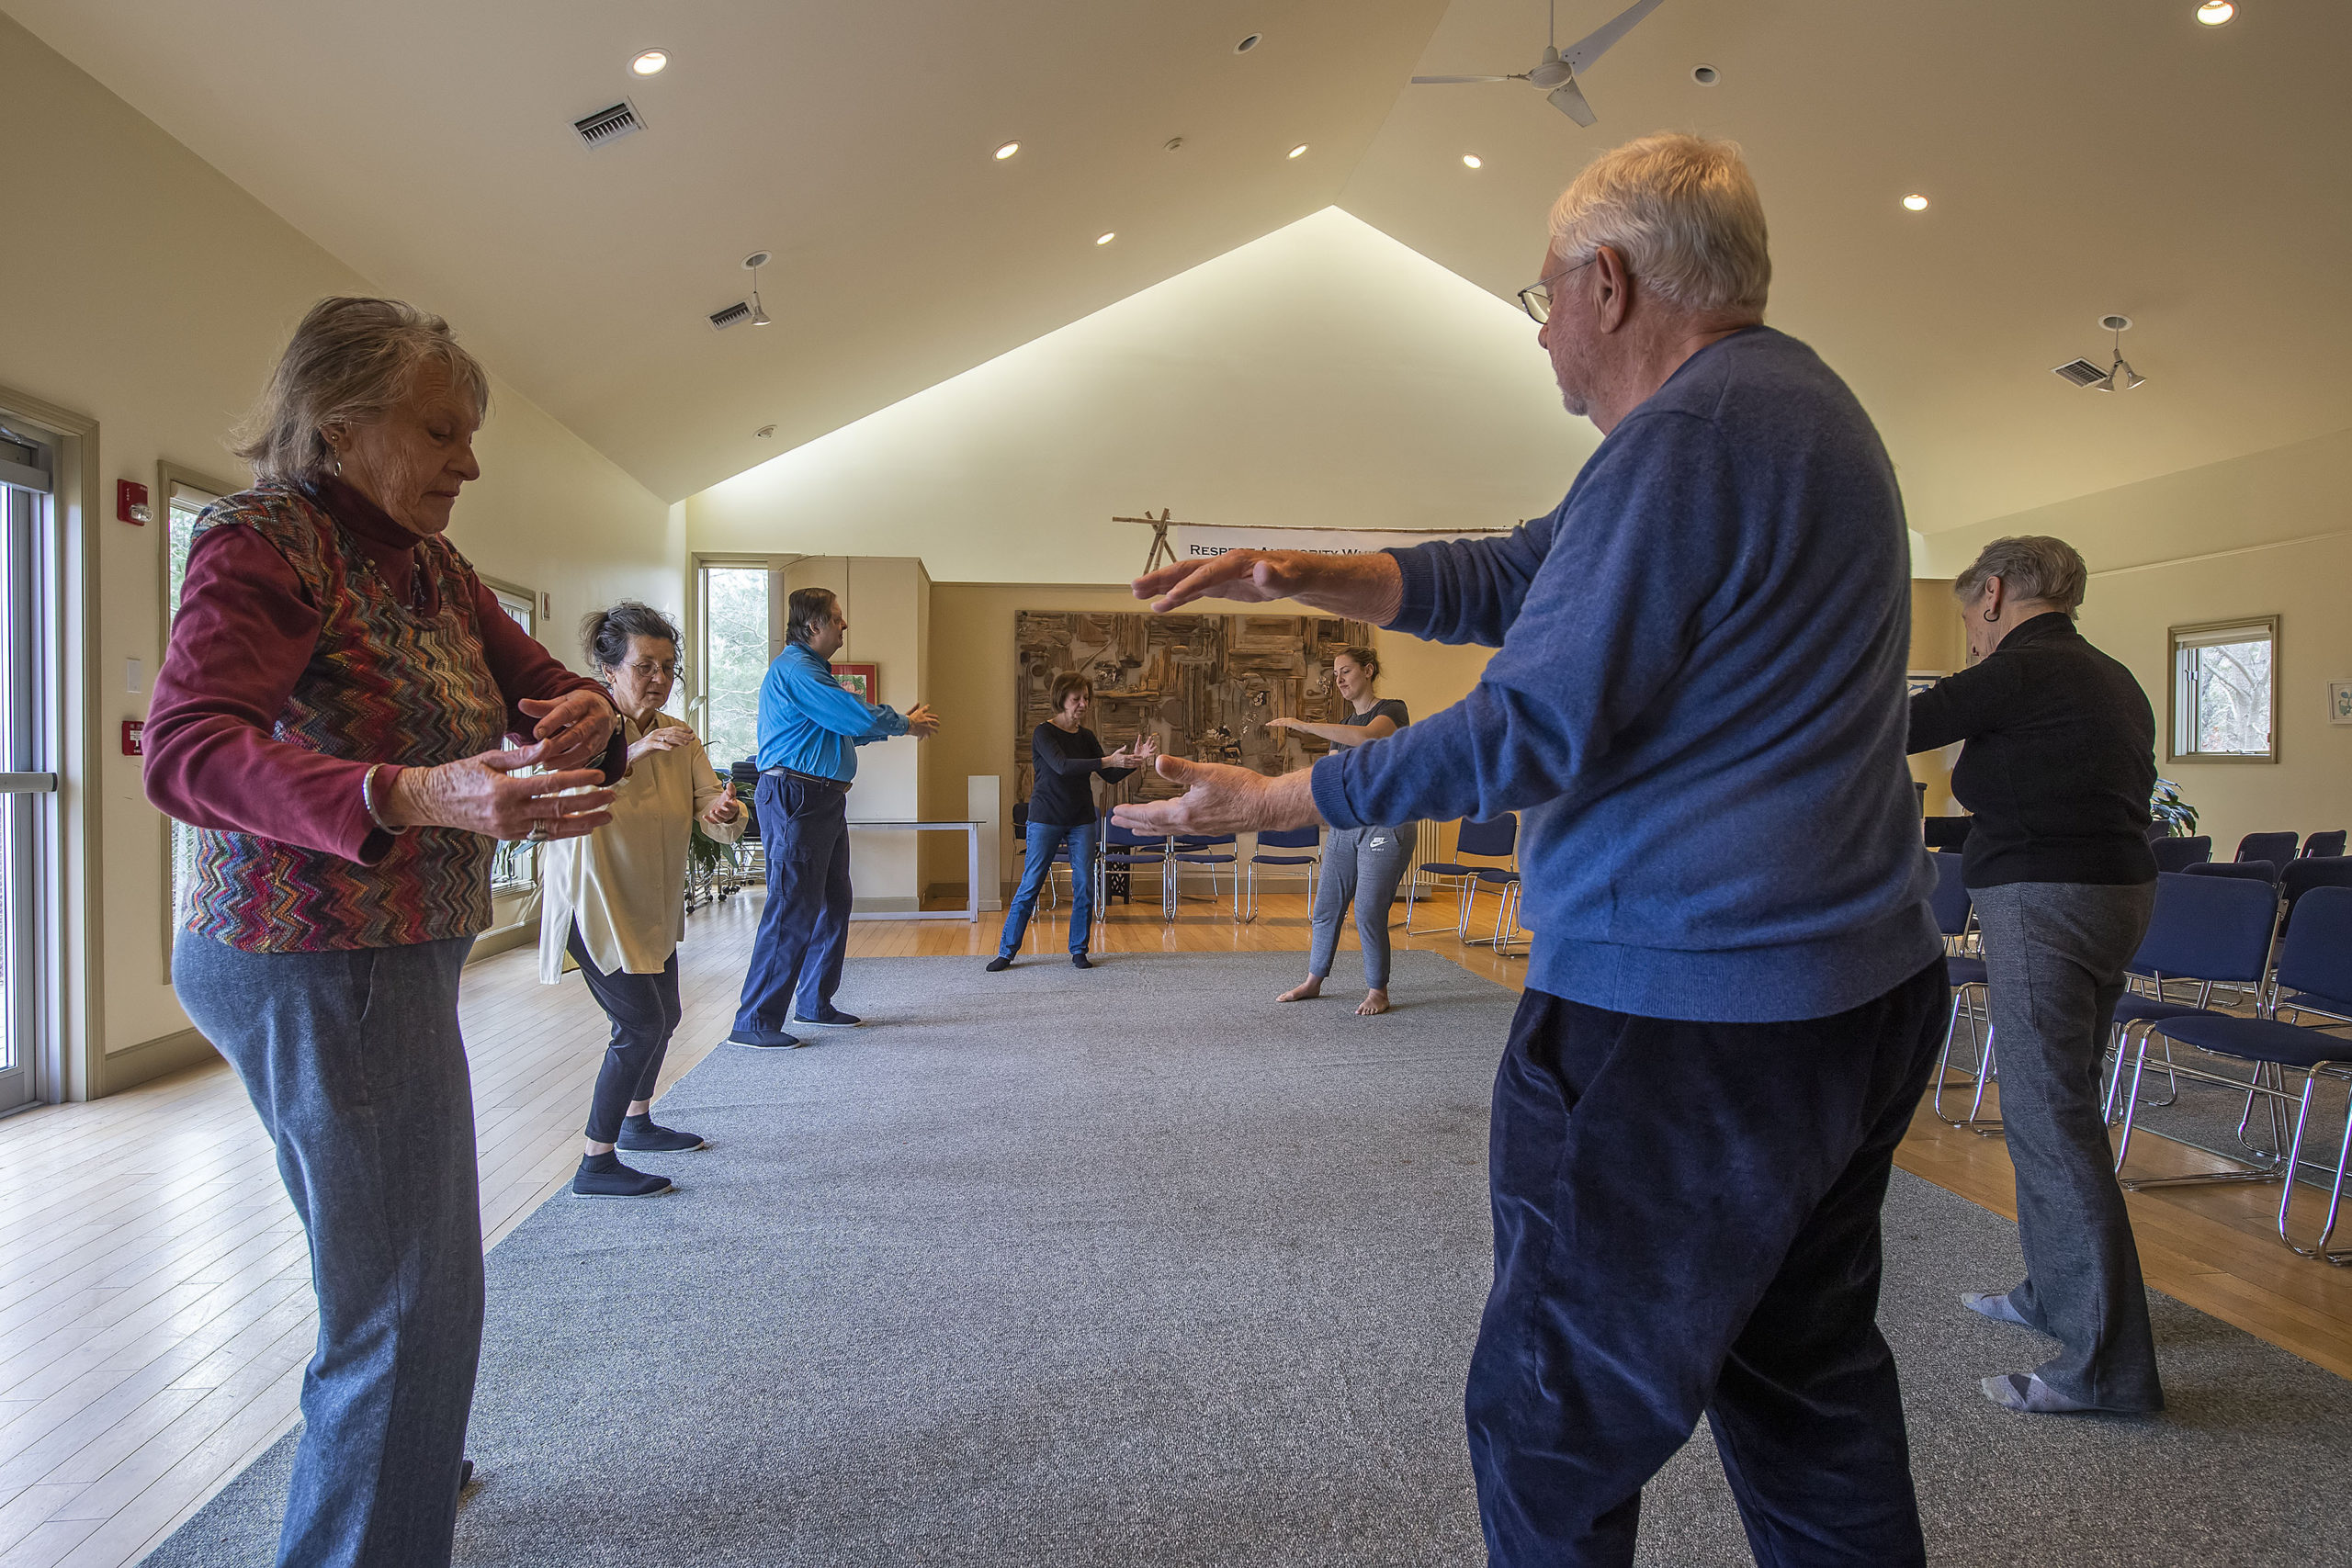 Instructors Tina Curran and Steve Flores, second and third from left, lead a small group as they practice Qi Gong at the Universalist Unitarian Church of the Hamptons on Sunday, January 12.  MICHAEL HELLER